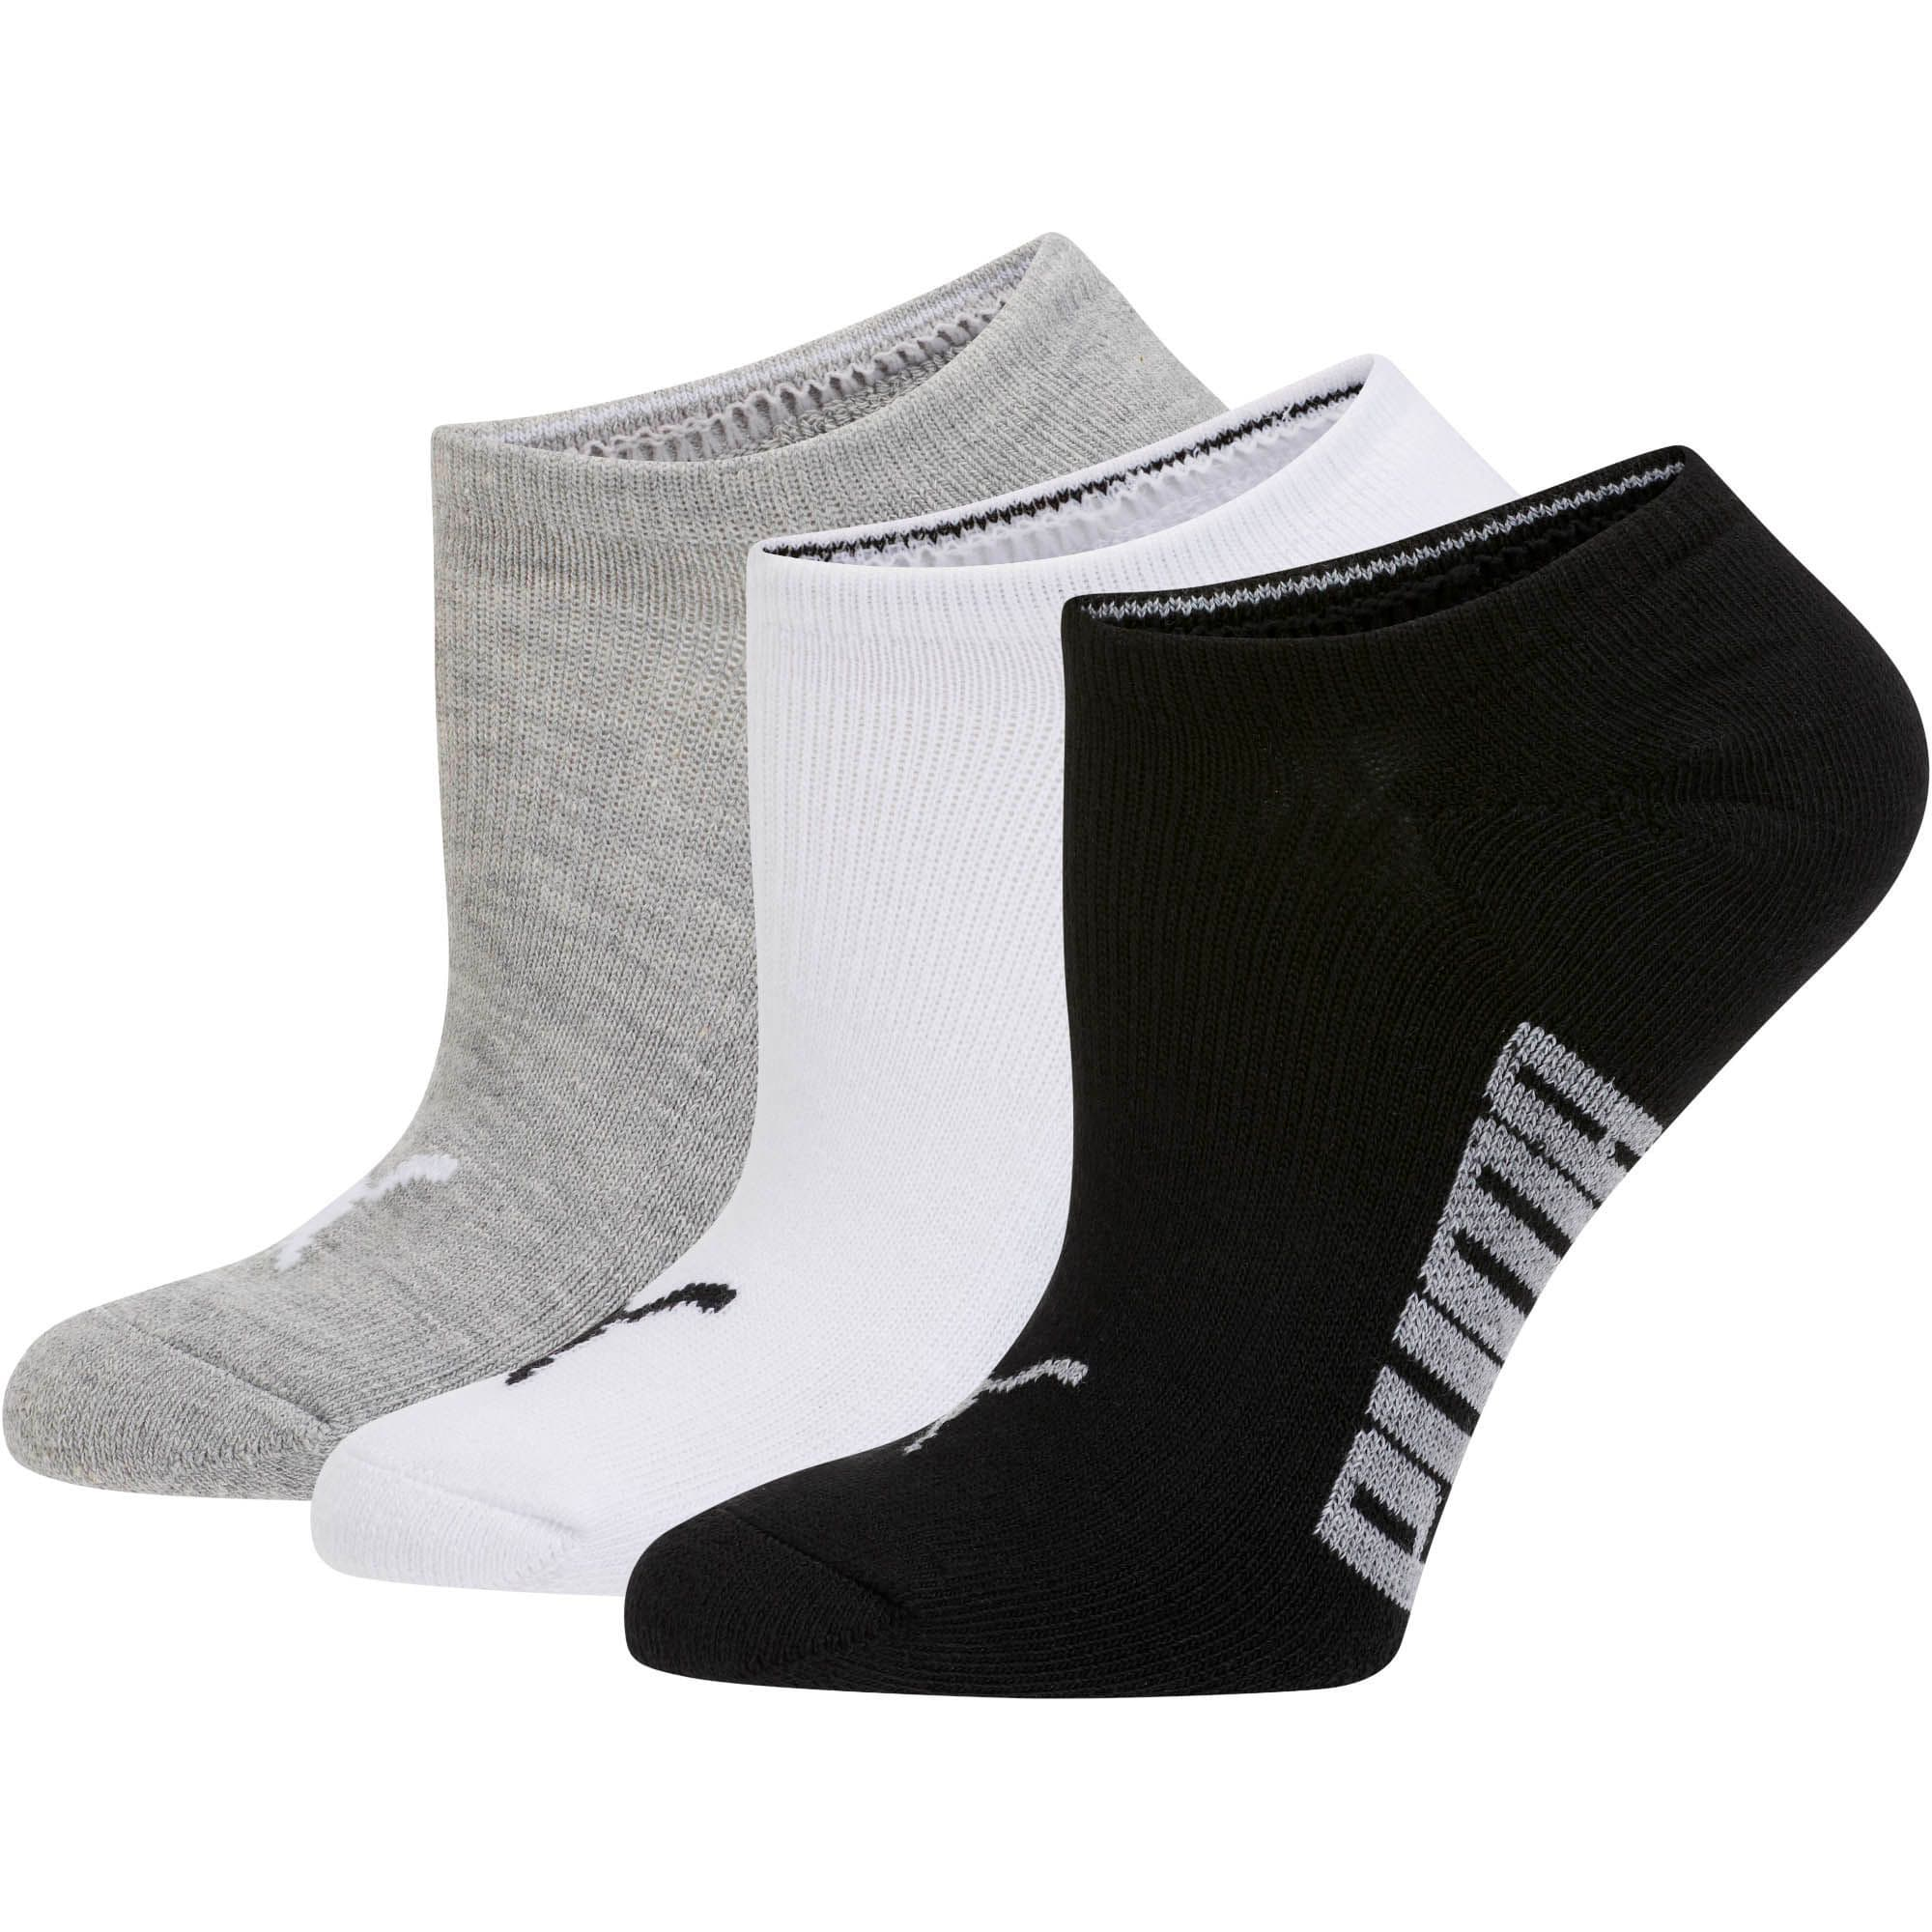 Thumbnail 1 of Women's Invisible No Show Socks (3 Pack), white-black-light heather gr, medium